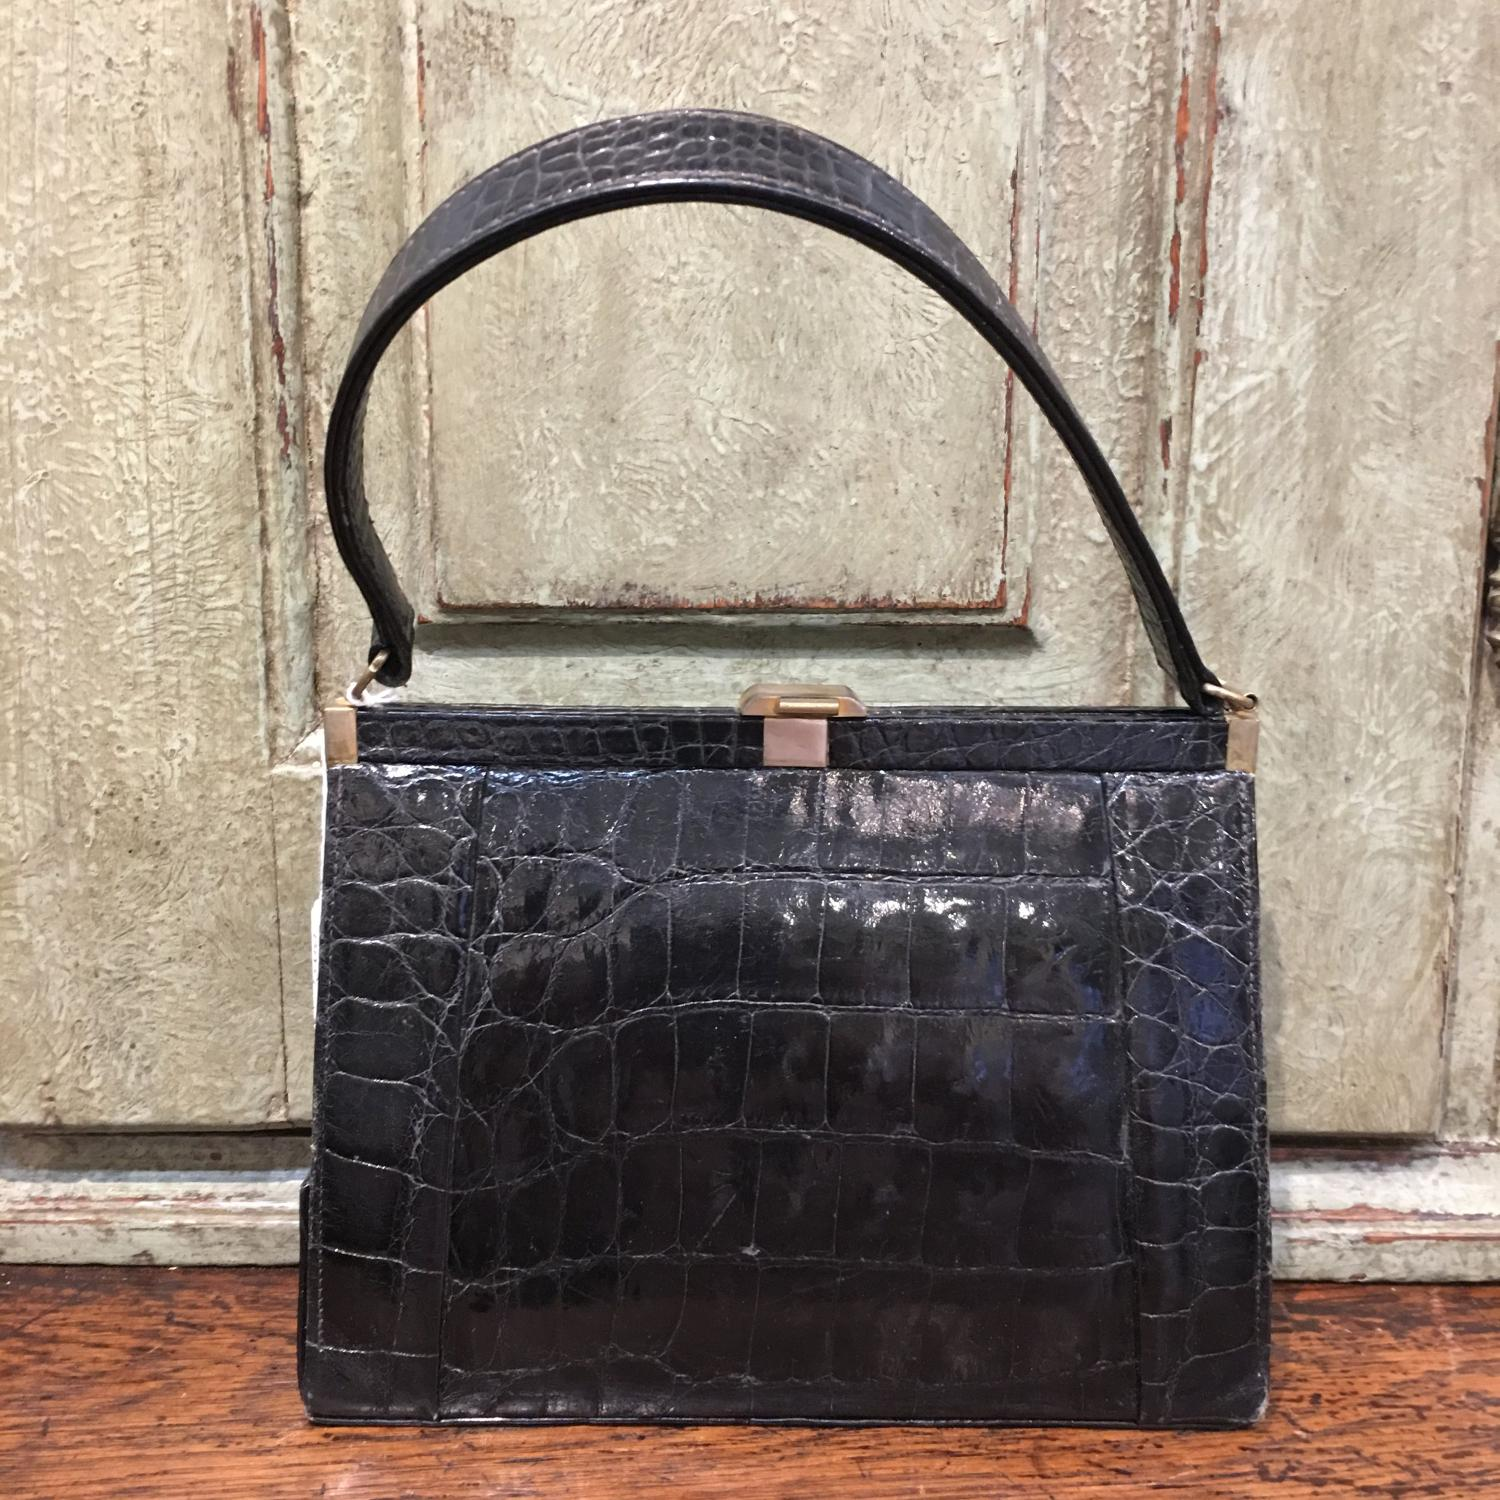 Vintage black crocodile handbag